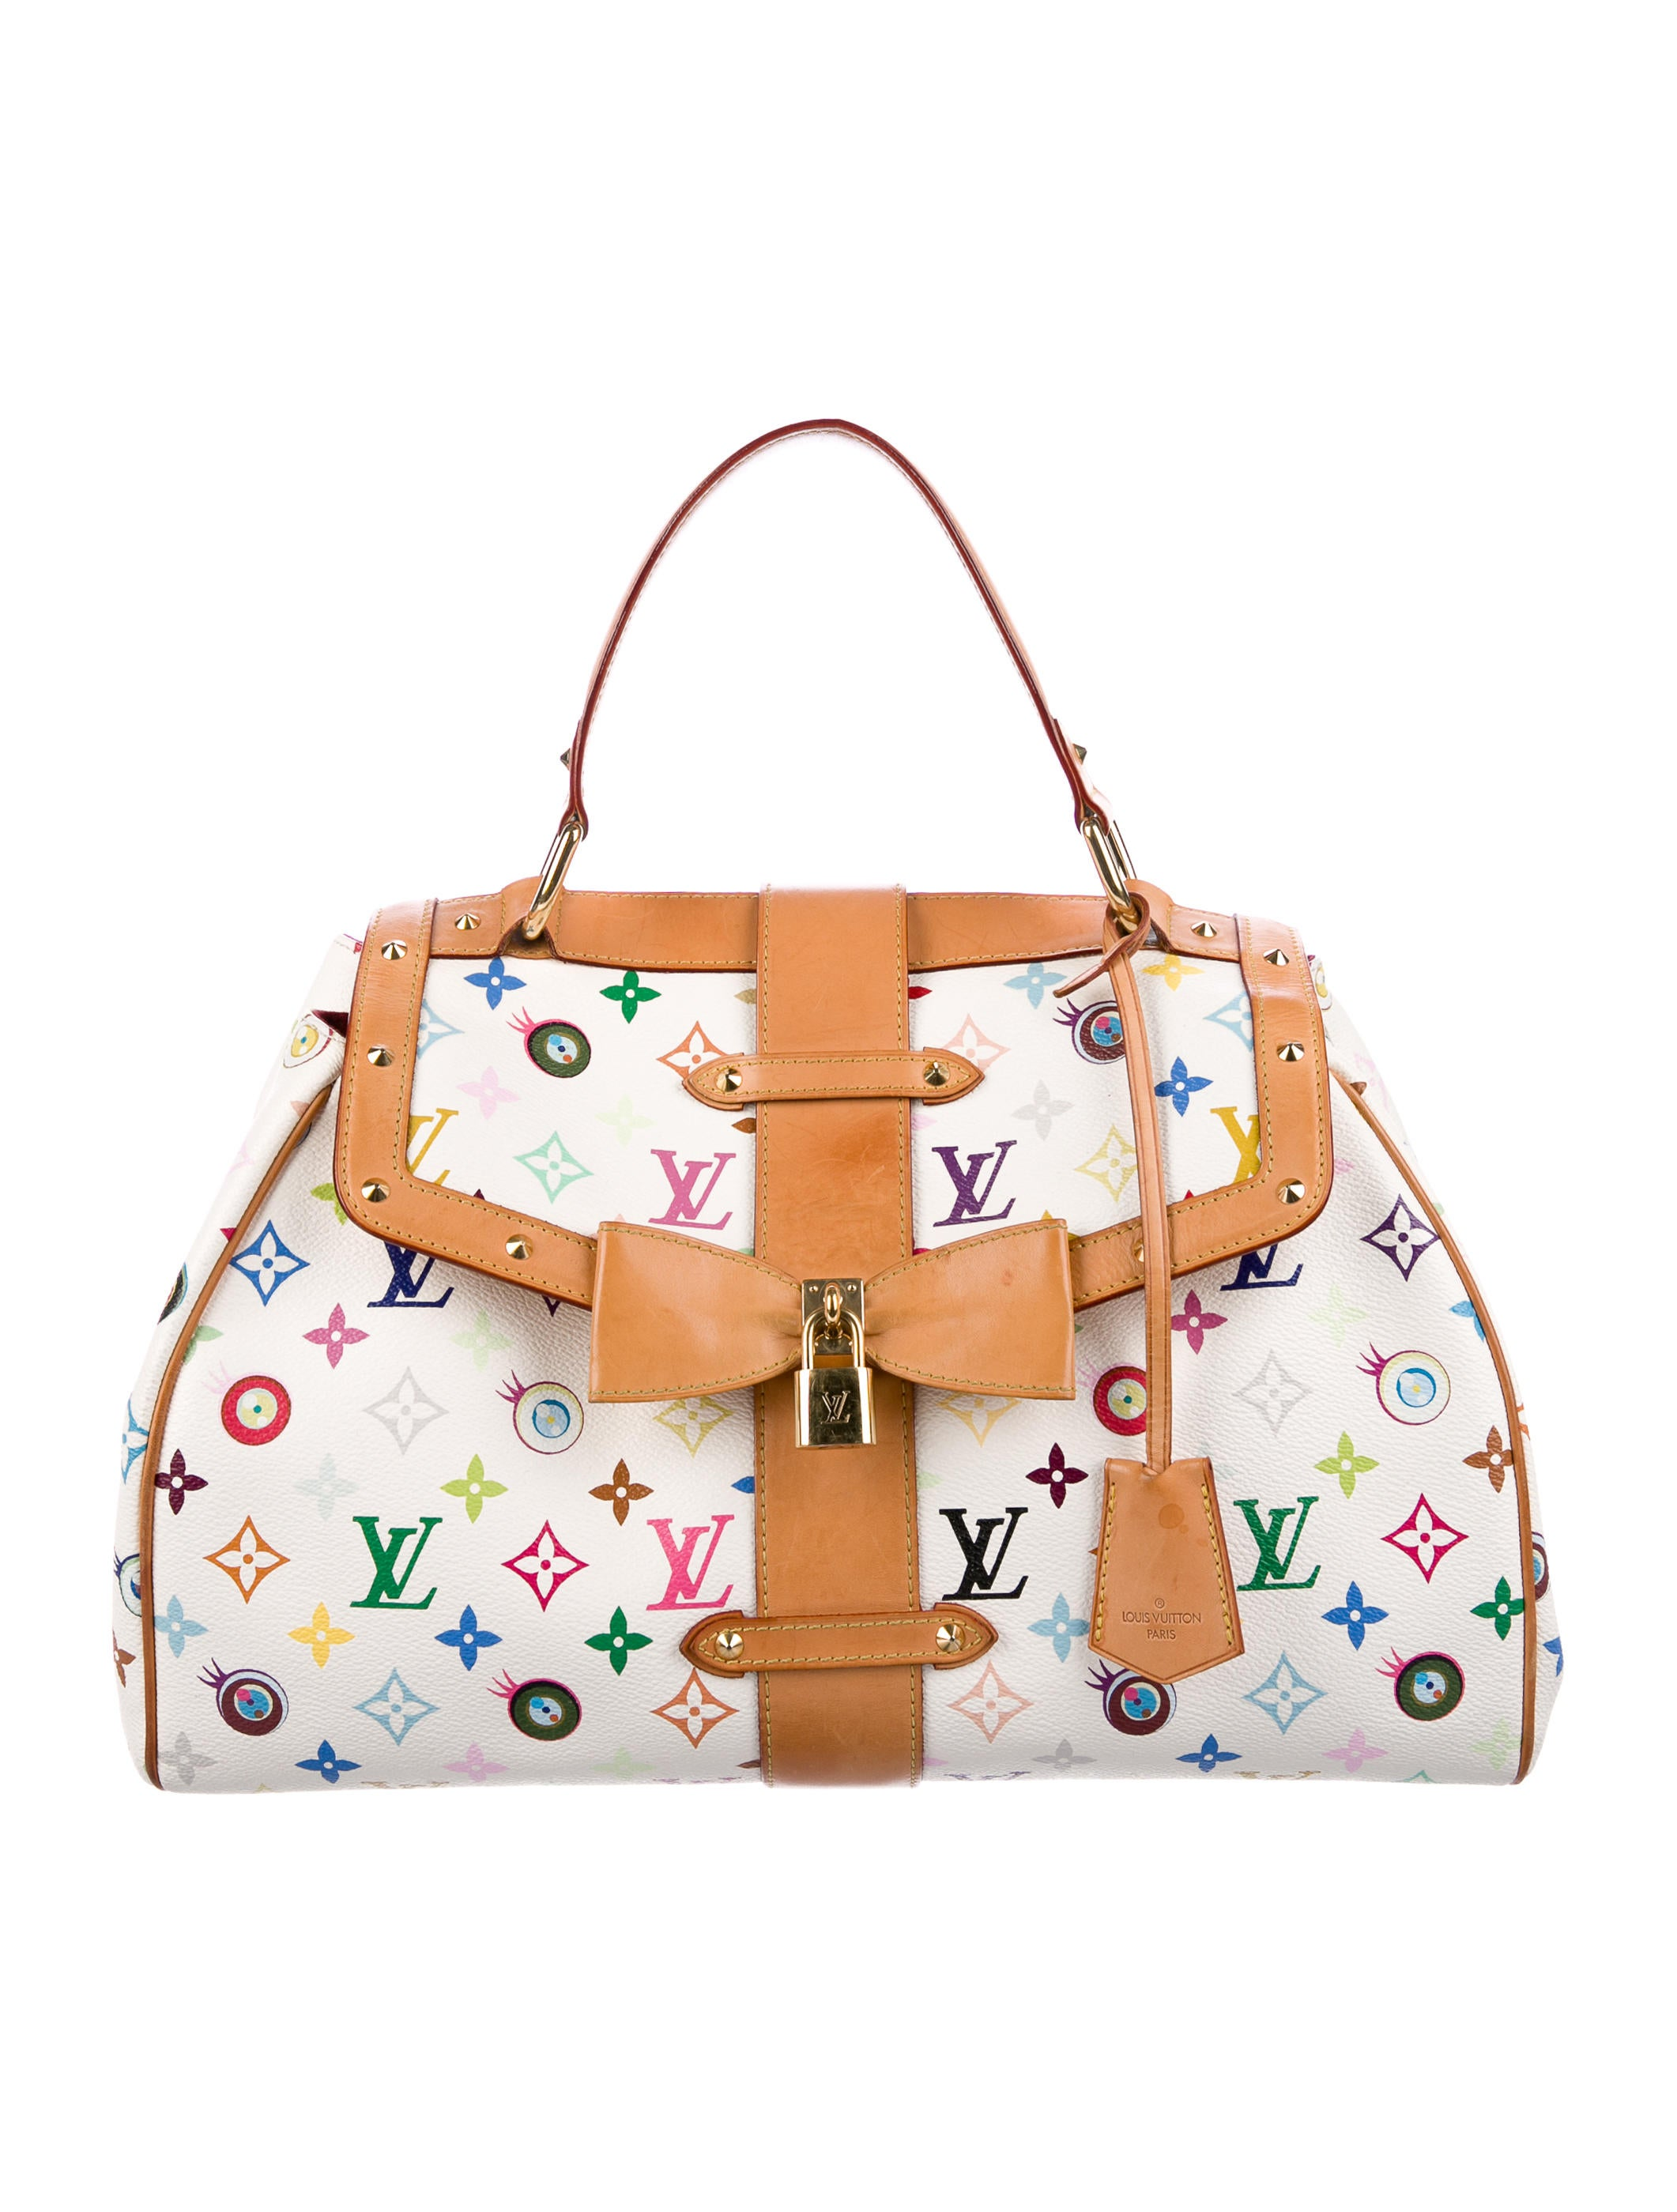 81299e95495f3 Louis Vuitton Artsy Mm Replica Hannah Handbags Luxury Accessories Bags  Louis Vuitton Rare 2003 Limited Edition Love Monogram Bytakashi Murakami